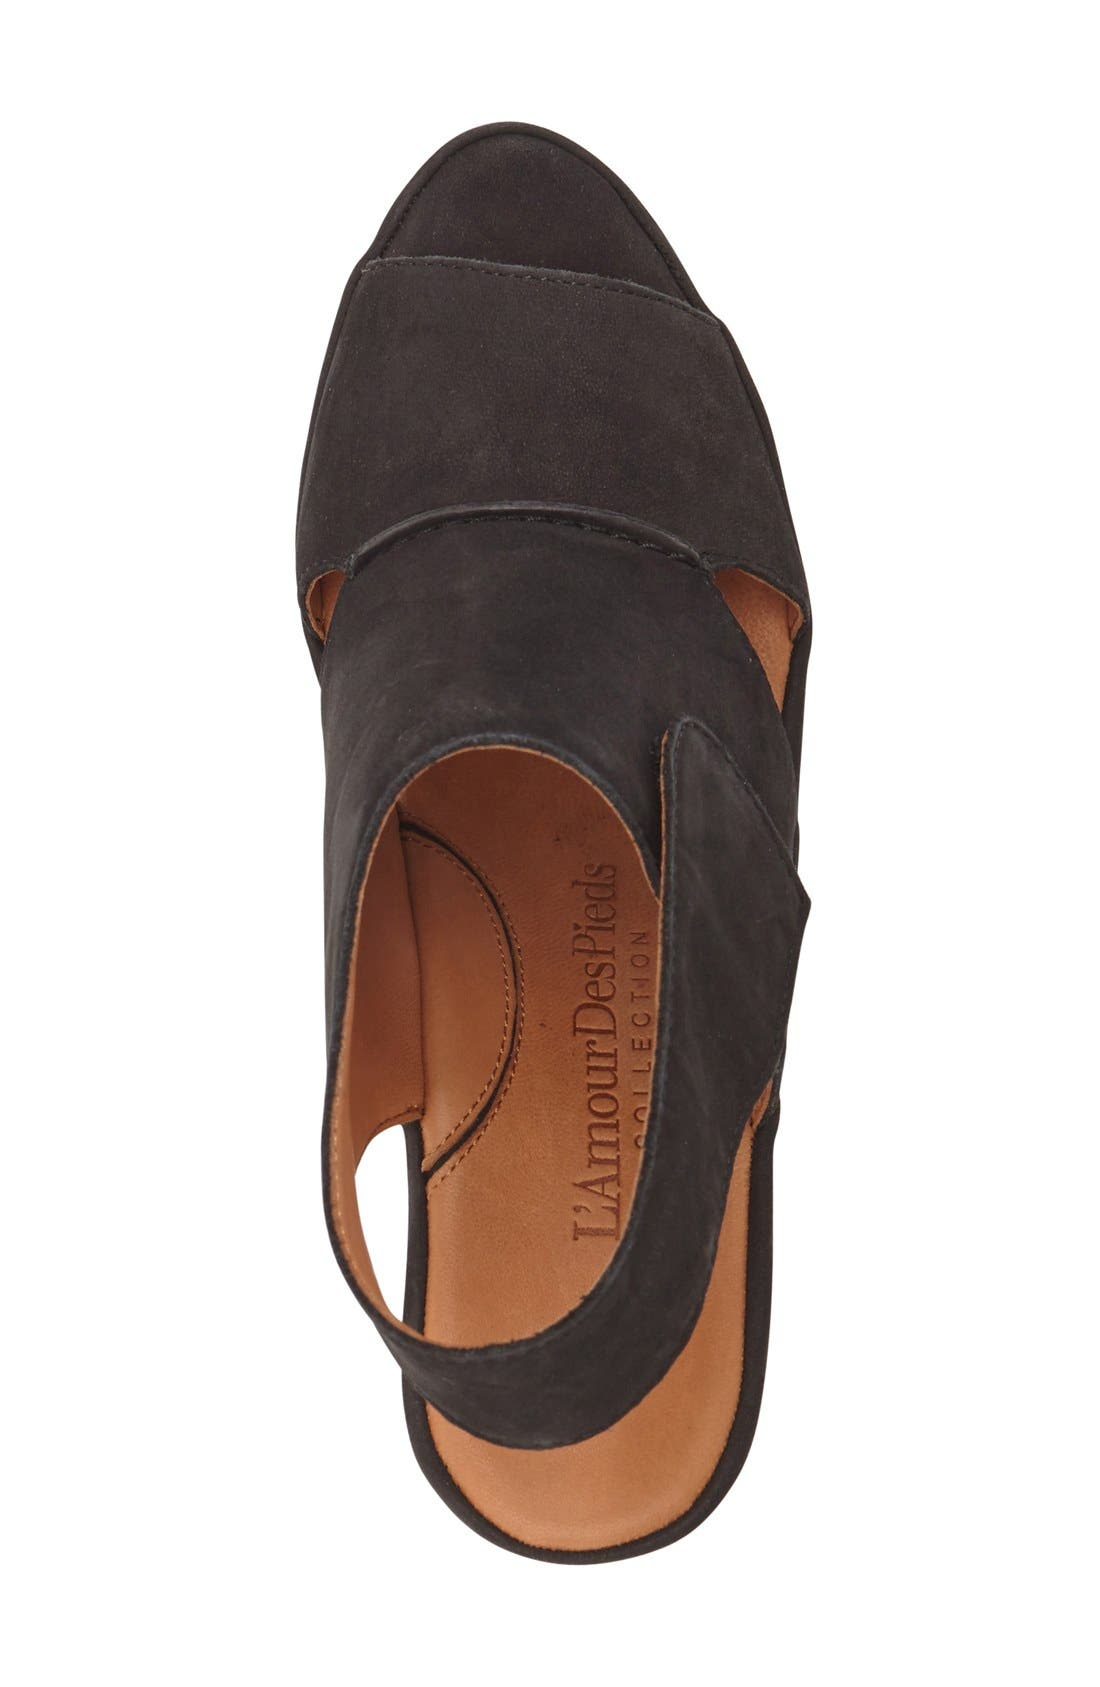 L'AMOUR DES PIEDS, 'Oswin' Peep Toe Demi Wedge Sandal, Alternate thumbnail 3, color, BLACK NUBUCK LEATHER